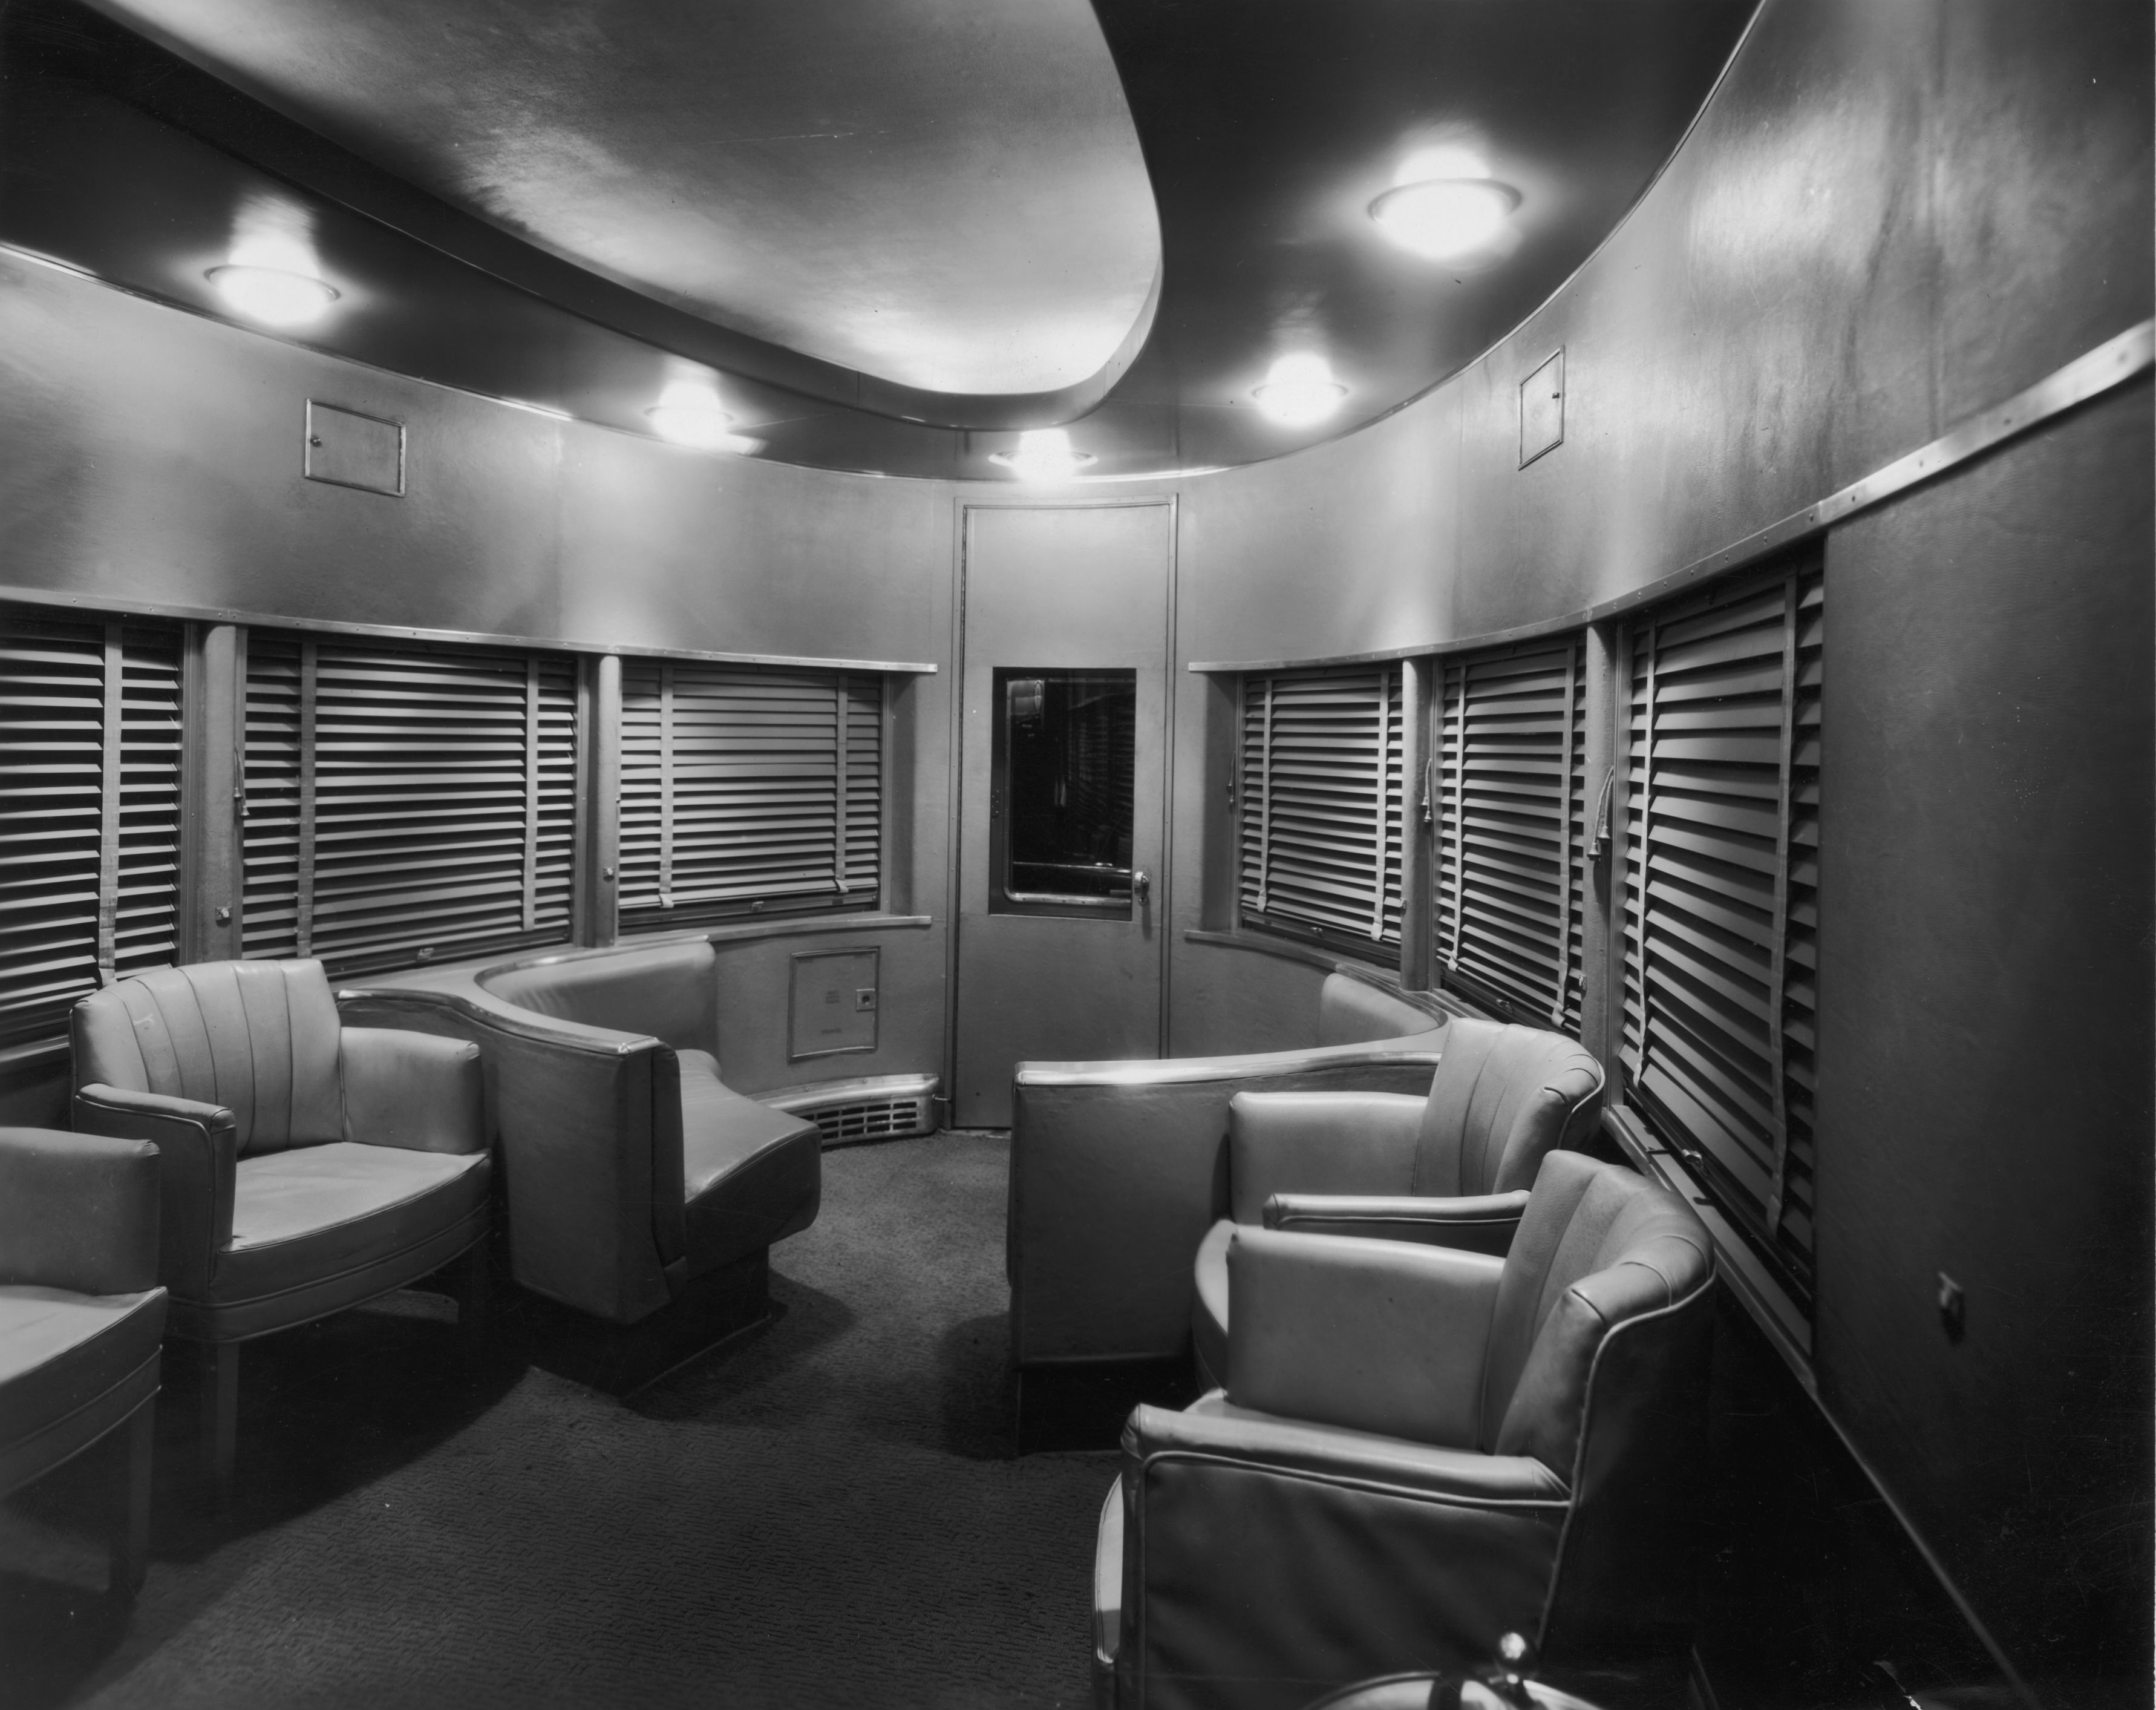 Observation car of the 20th century limited designed by for Room design zug